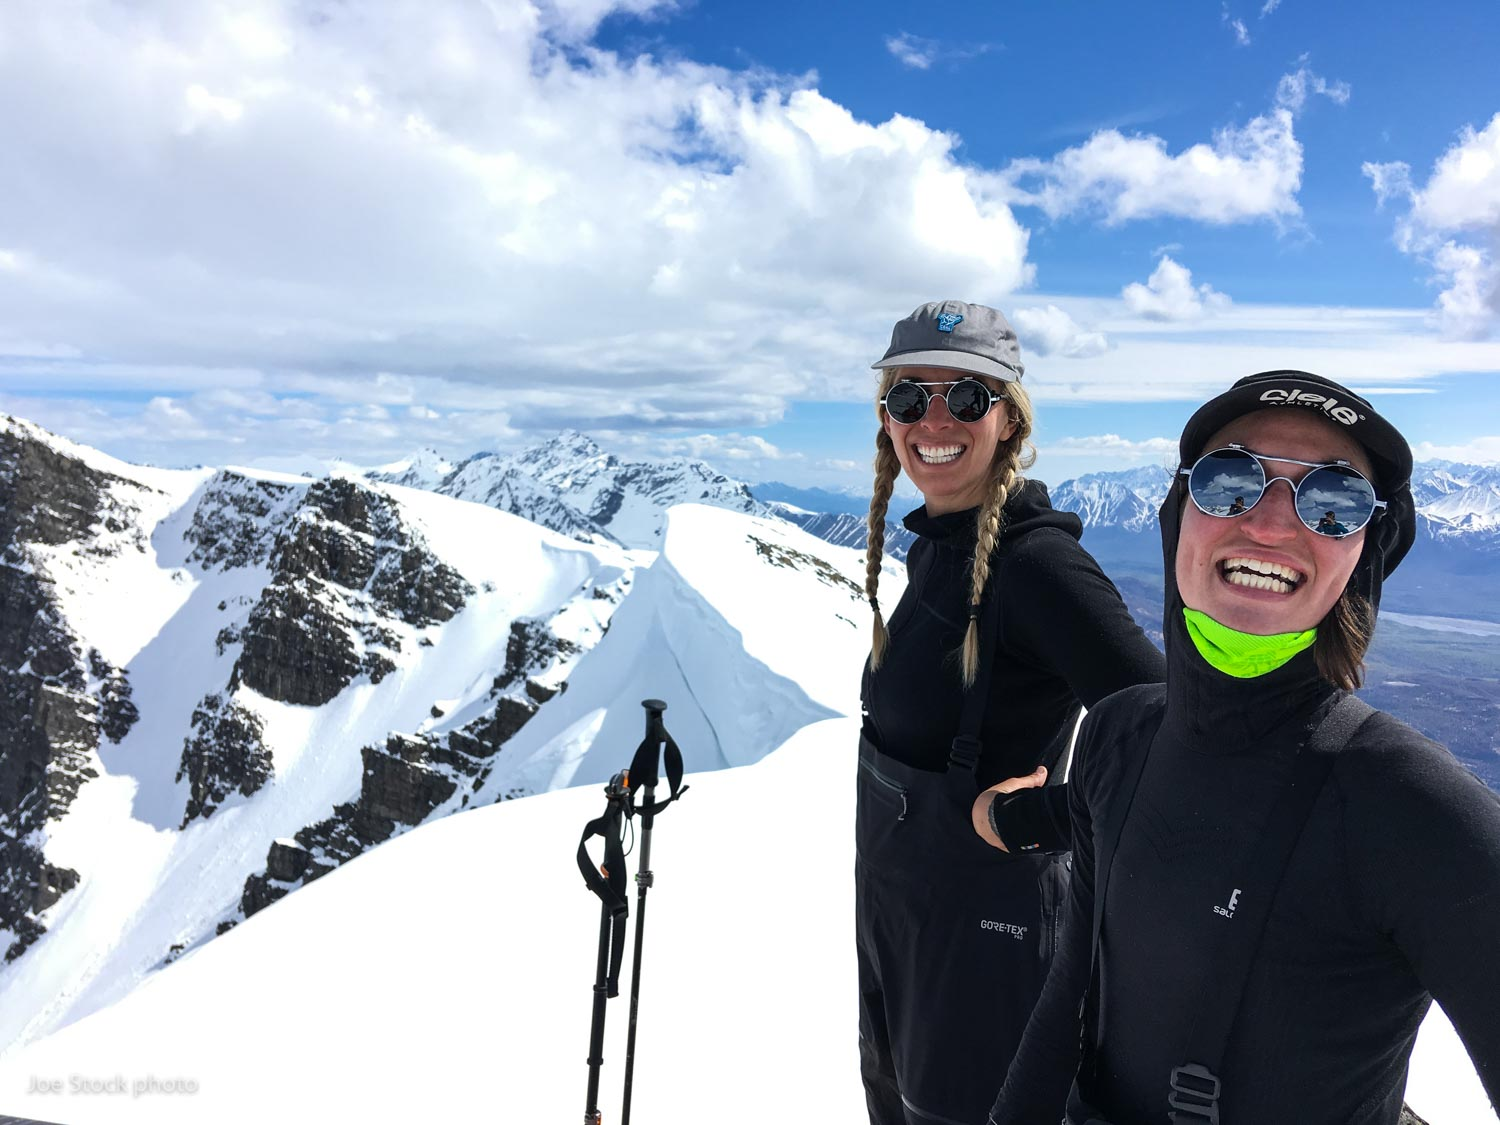 Amanda Hankison and Trish Franco on a four-day ski mountaineering and Denali prep course. Good luck on your expedition!  Thanks everyone sooooo much for an amazing winter! I hope to ski with all of you again soon!